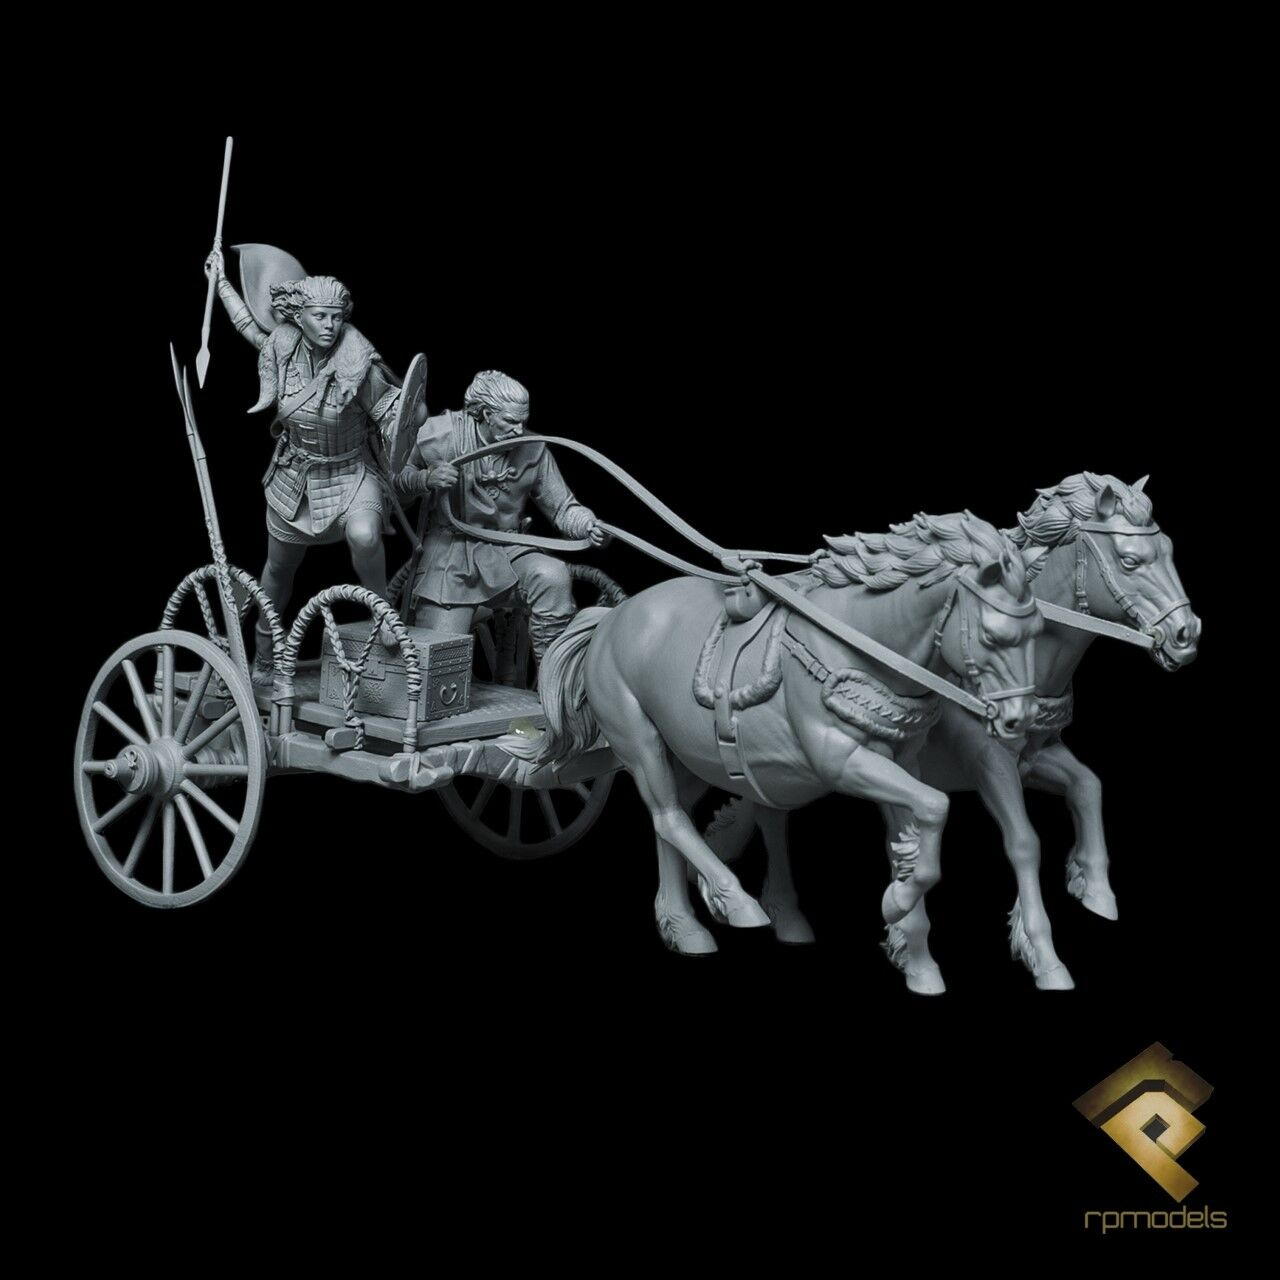 RP Models Boudica in War Chariot 2 horses Unpainted 75mm Figure kit